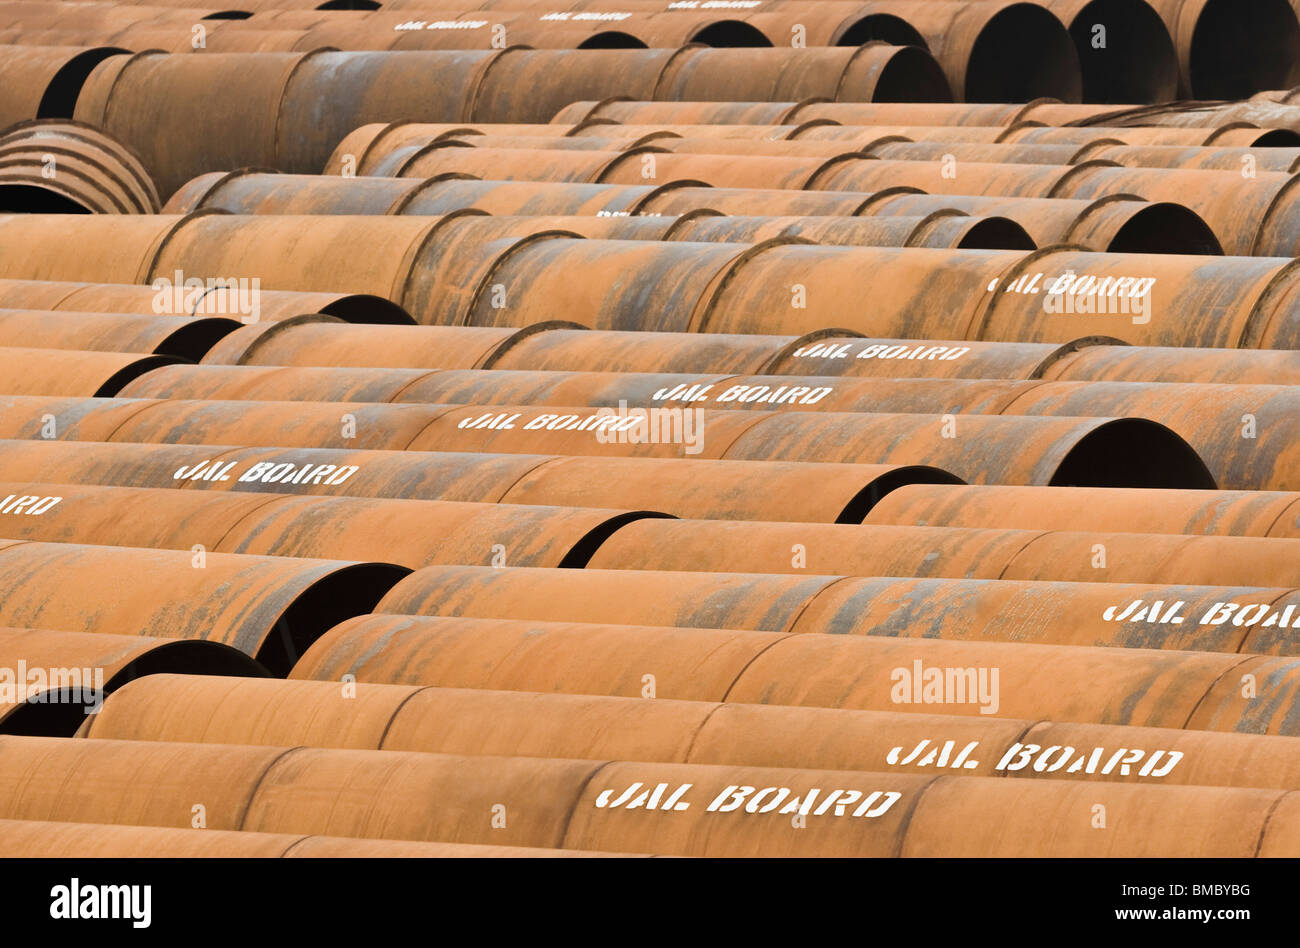 Rusty sewage pipes in a row, Delhi, India - Stock Image